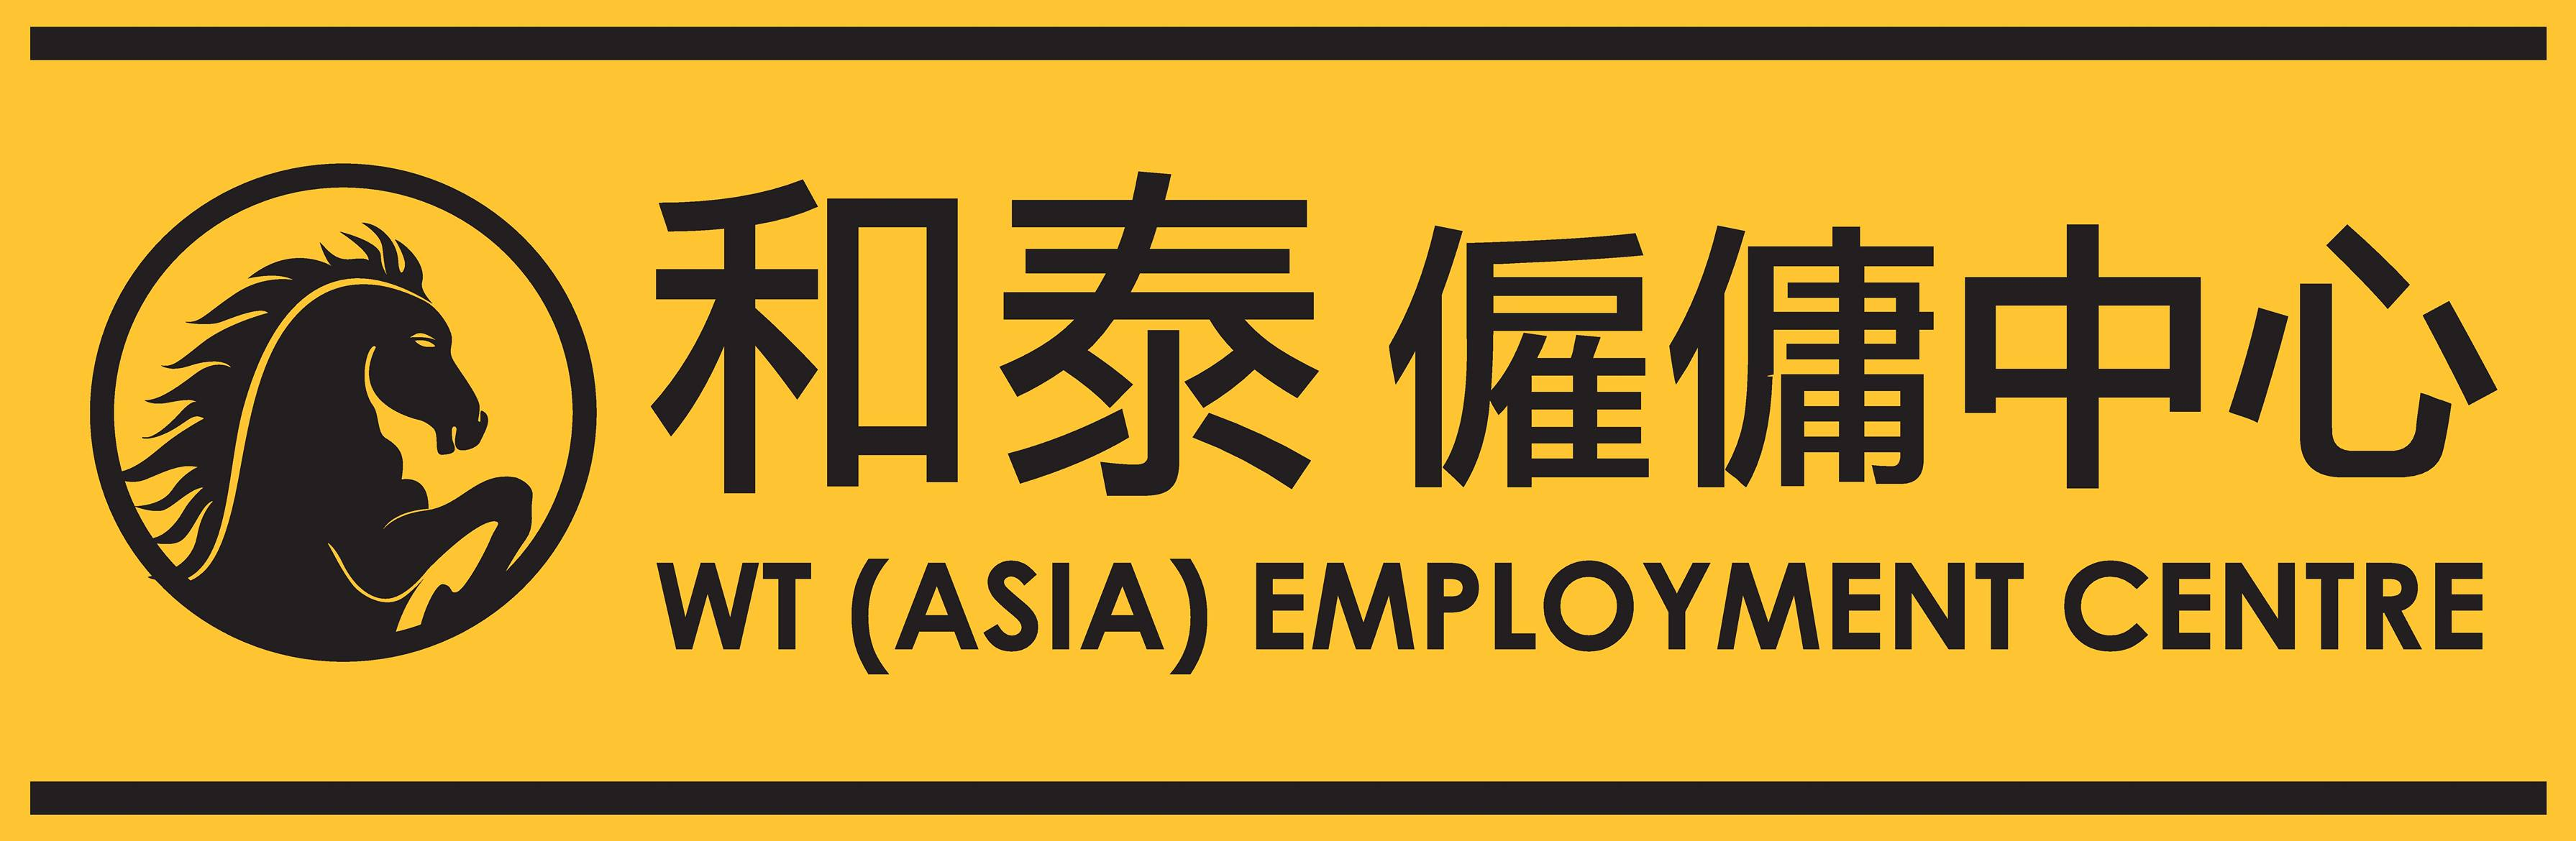 和泰僱傭中心 WT (Asia) Employment Centre| EC Search 搵傭易